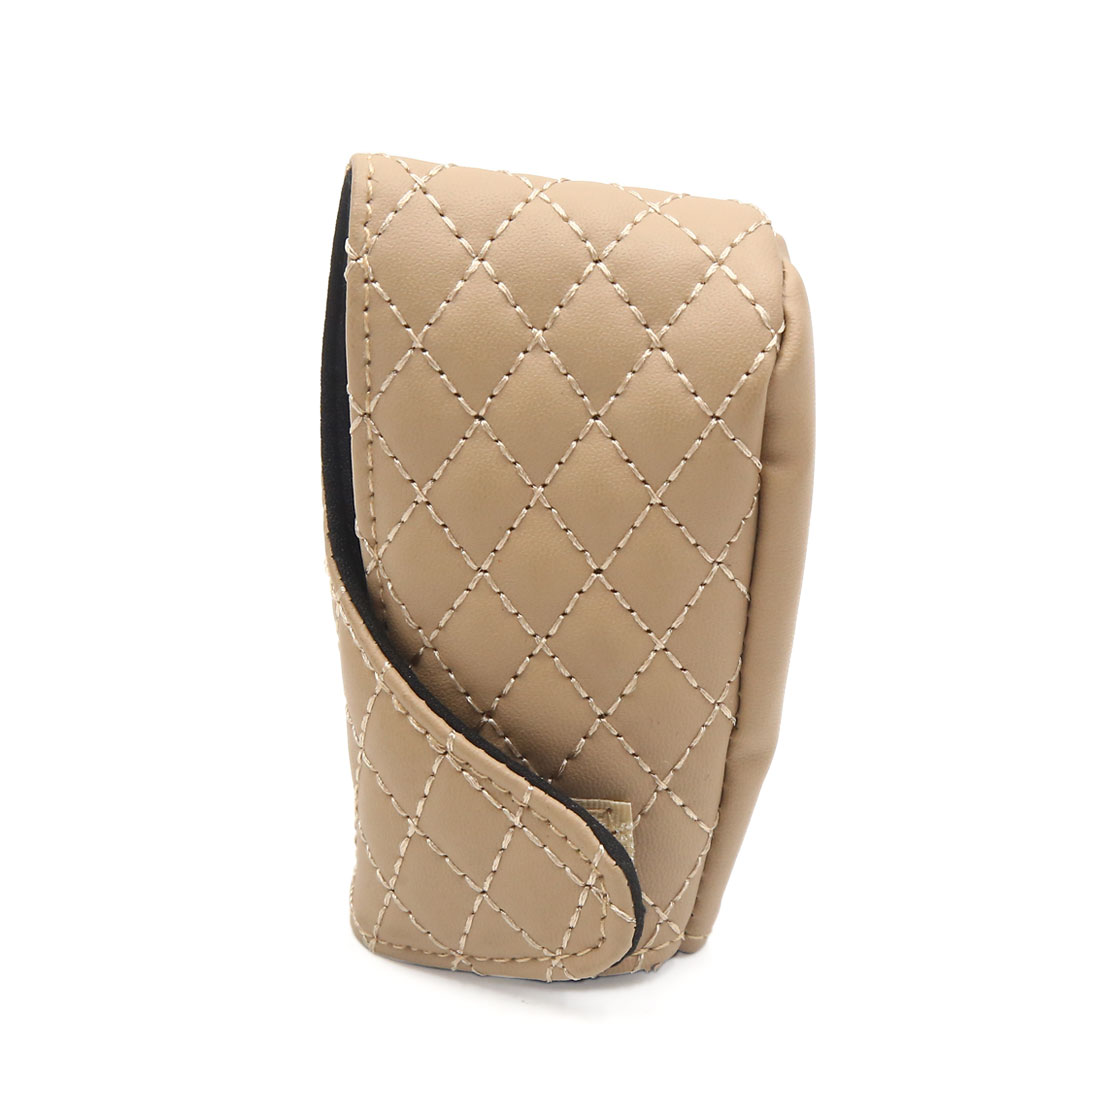 Universal Beige Faux Leather Shift Knob Cover Protective Sleeve for Auto Car